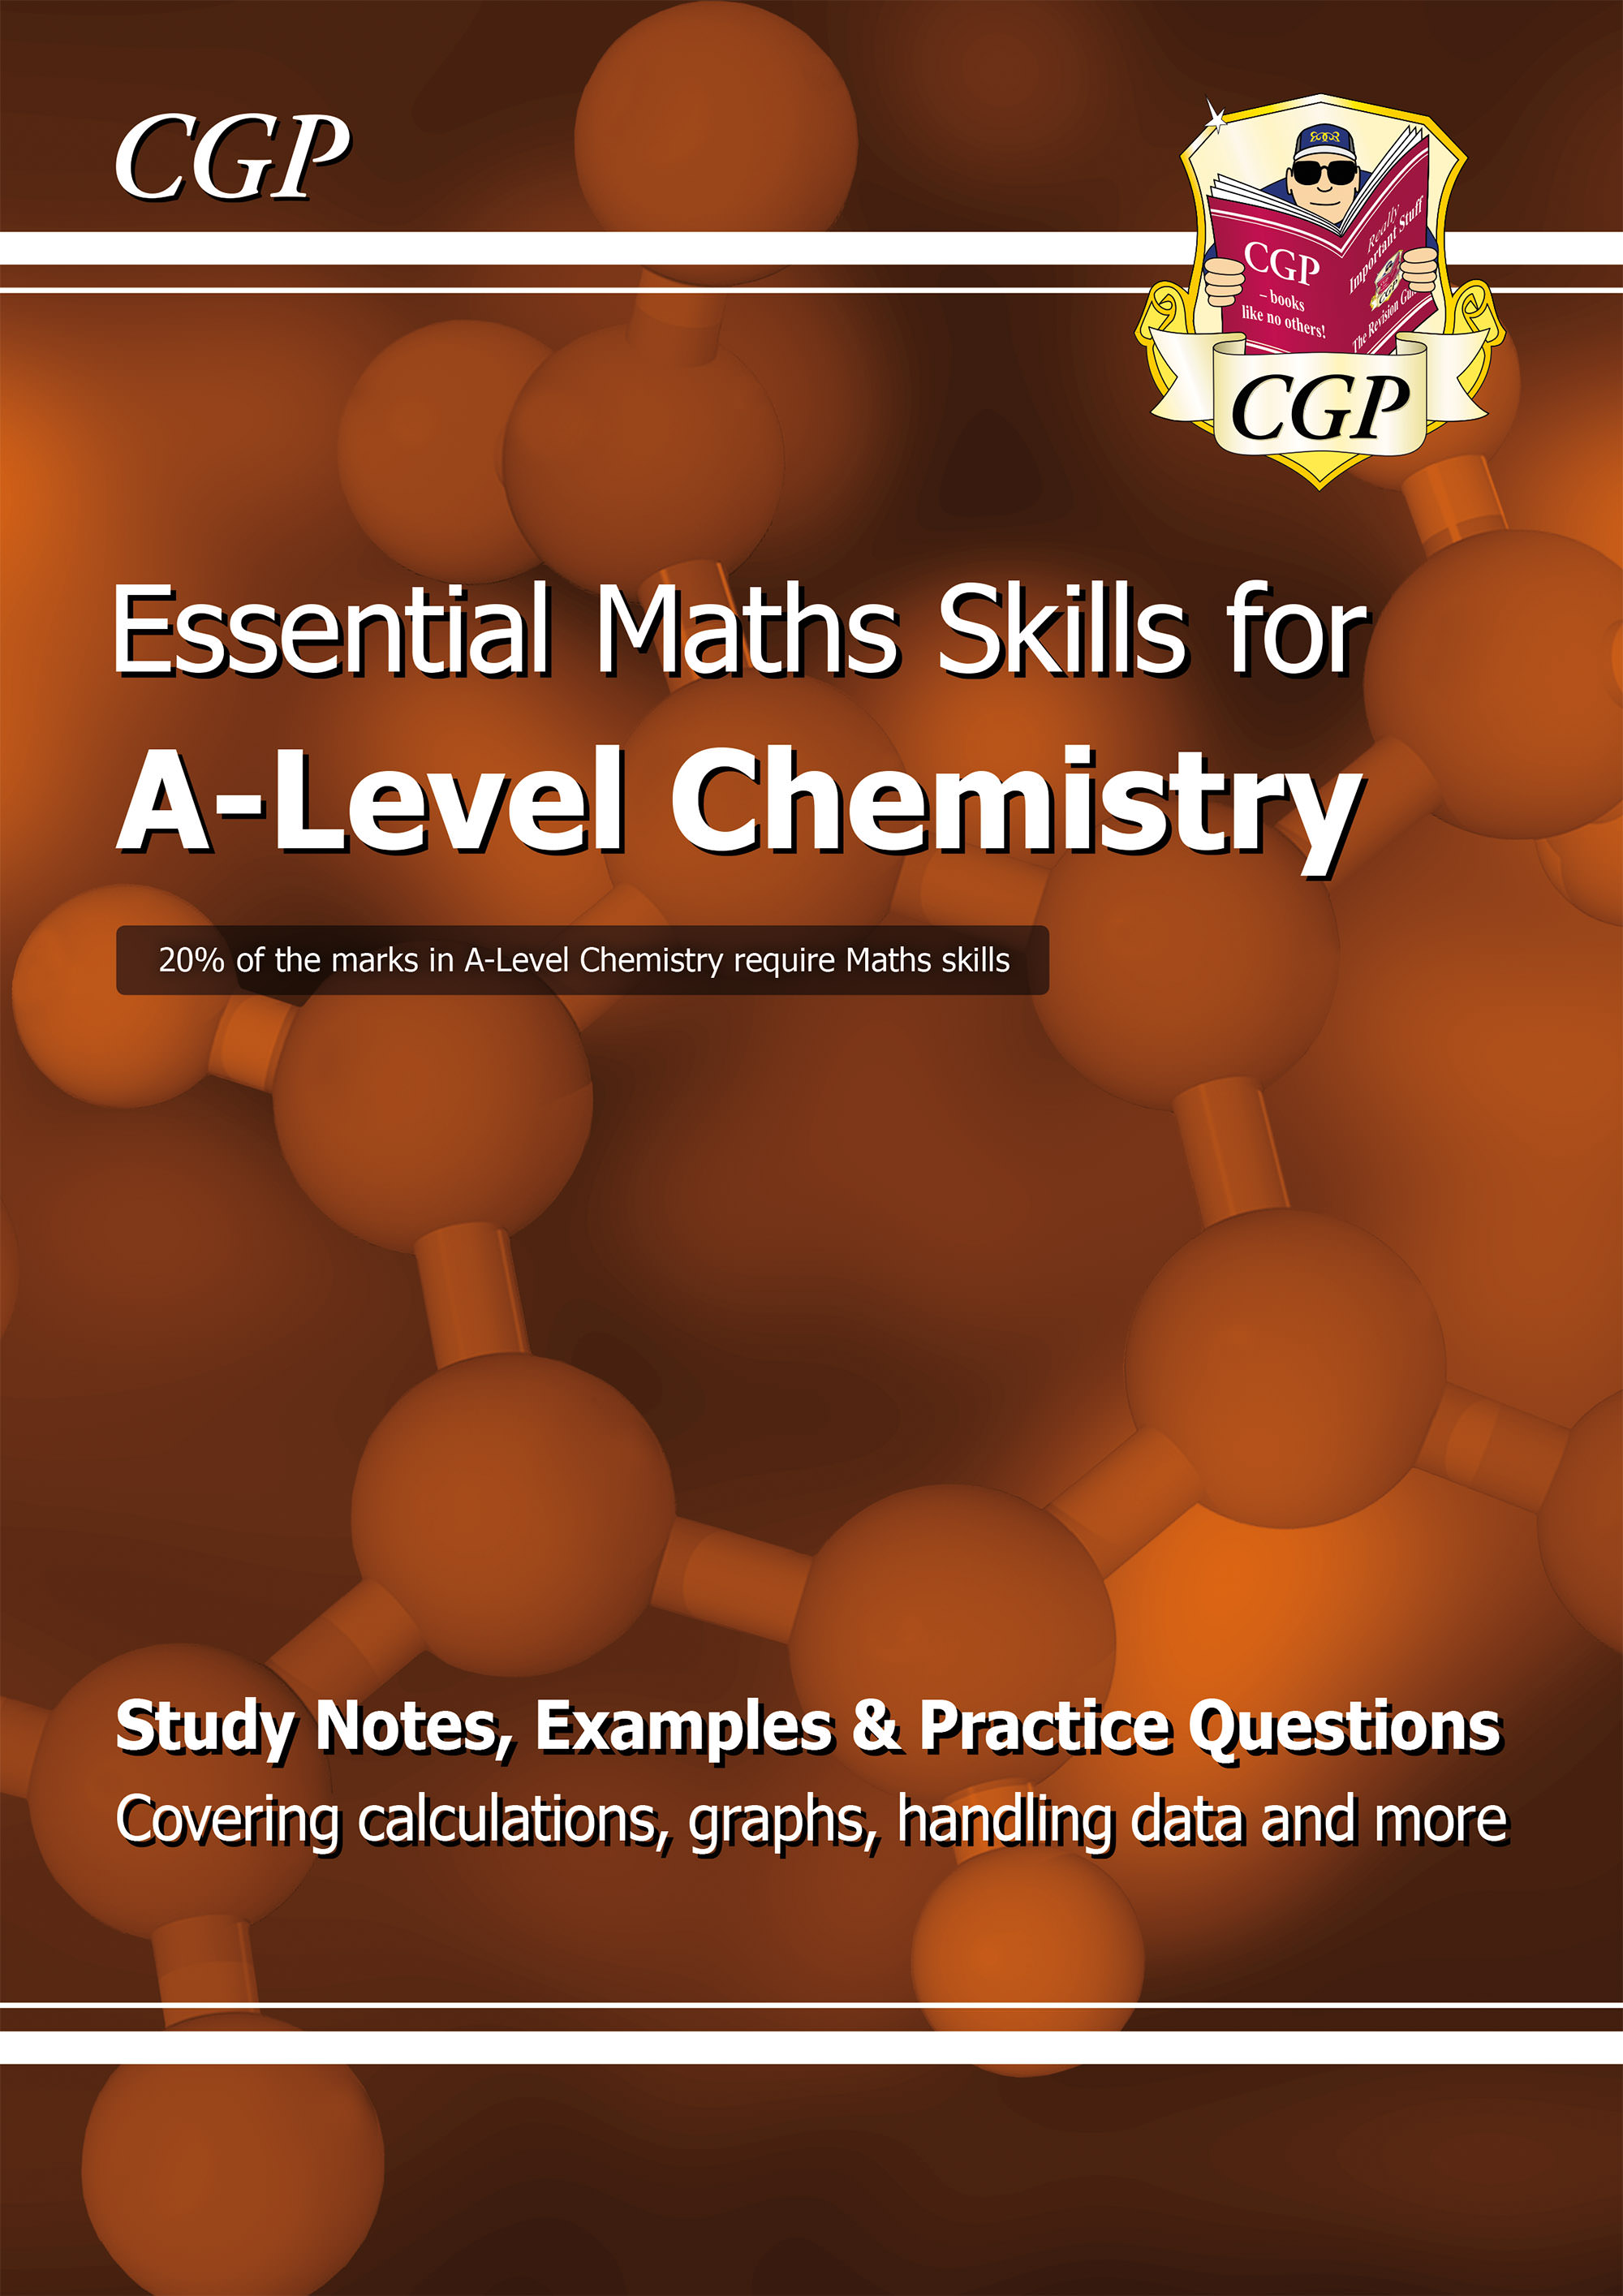 CMR71DK - A-Level Chemistry: Essential Maths Skills